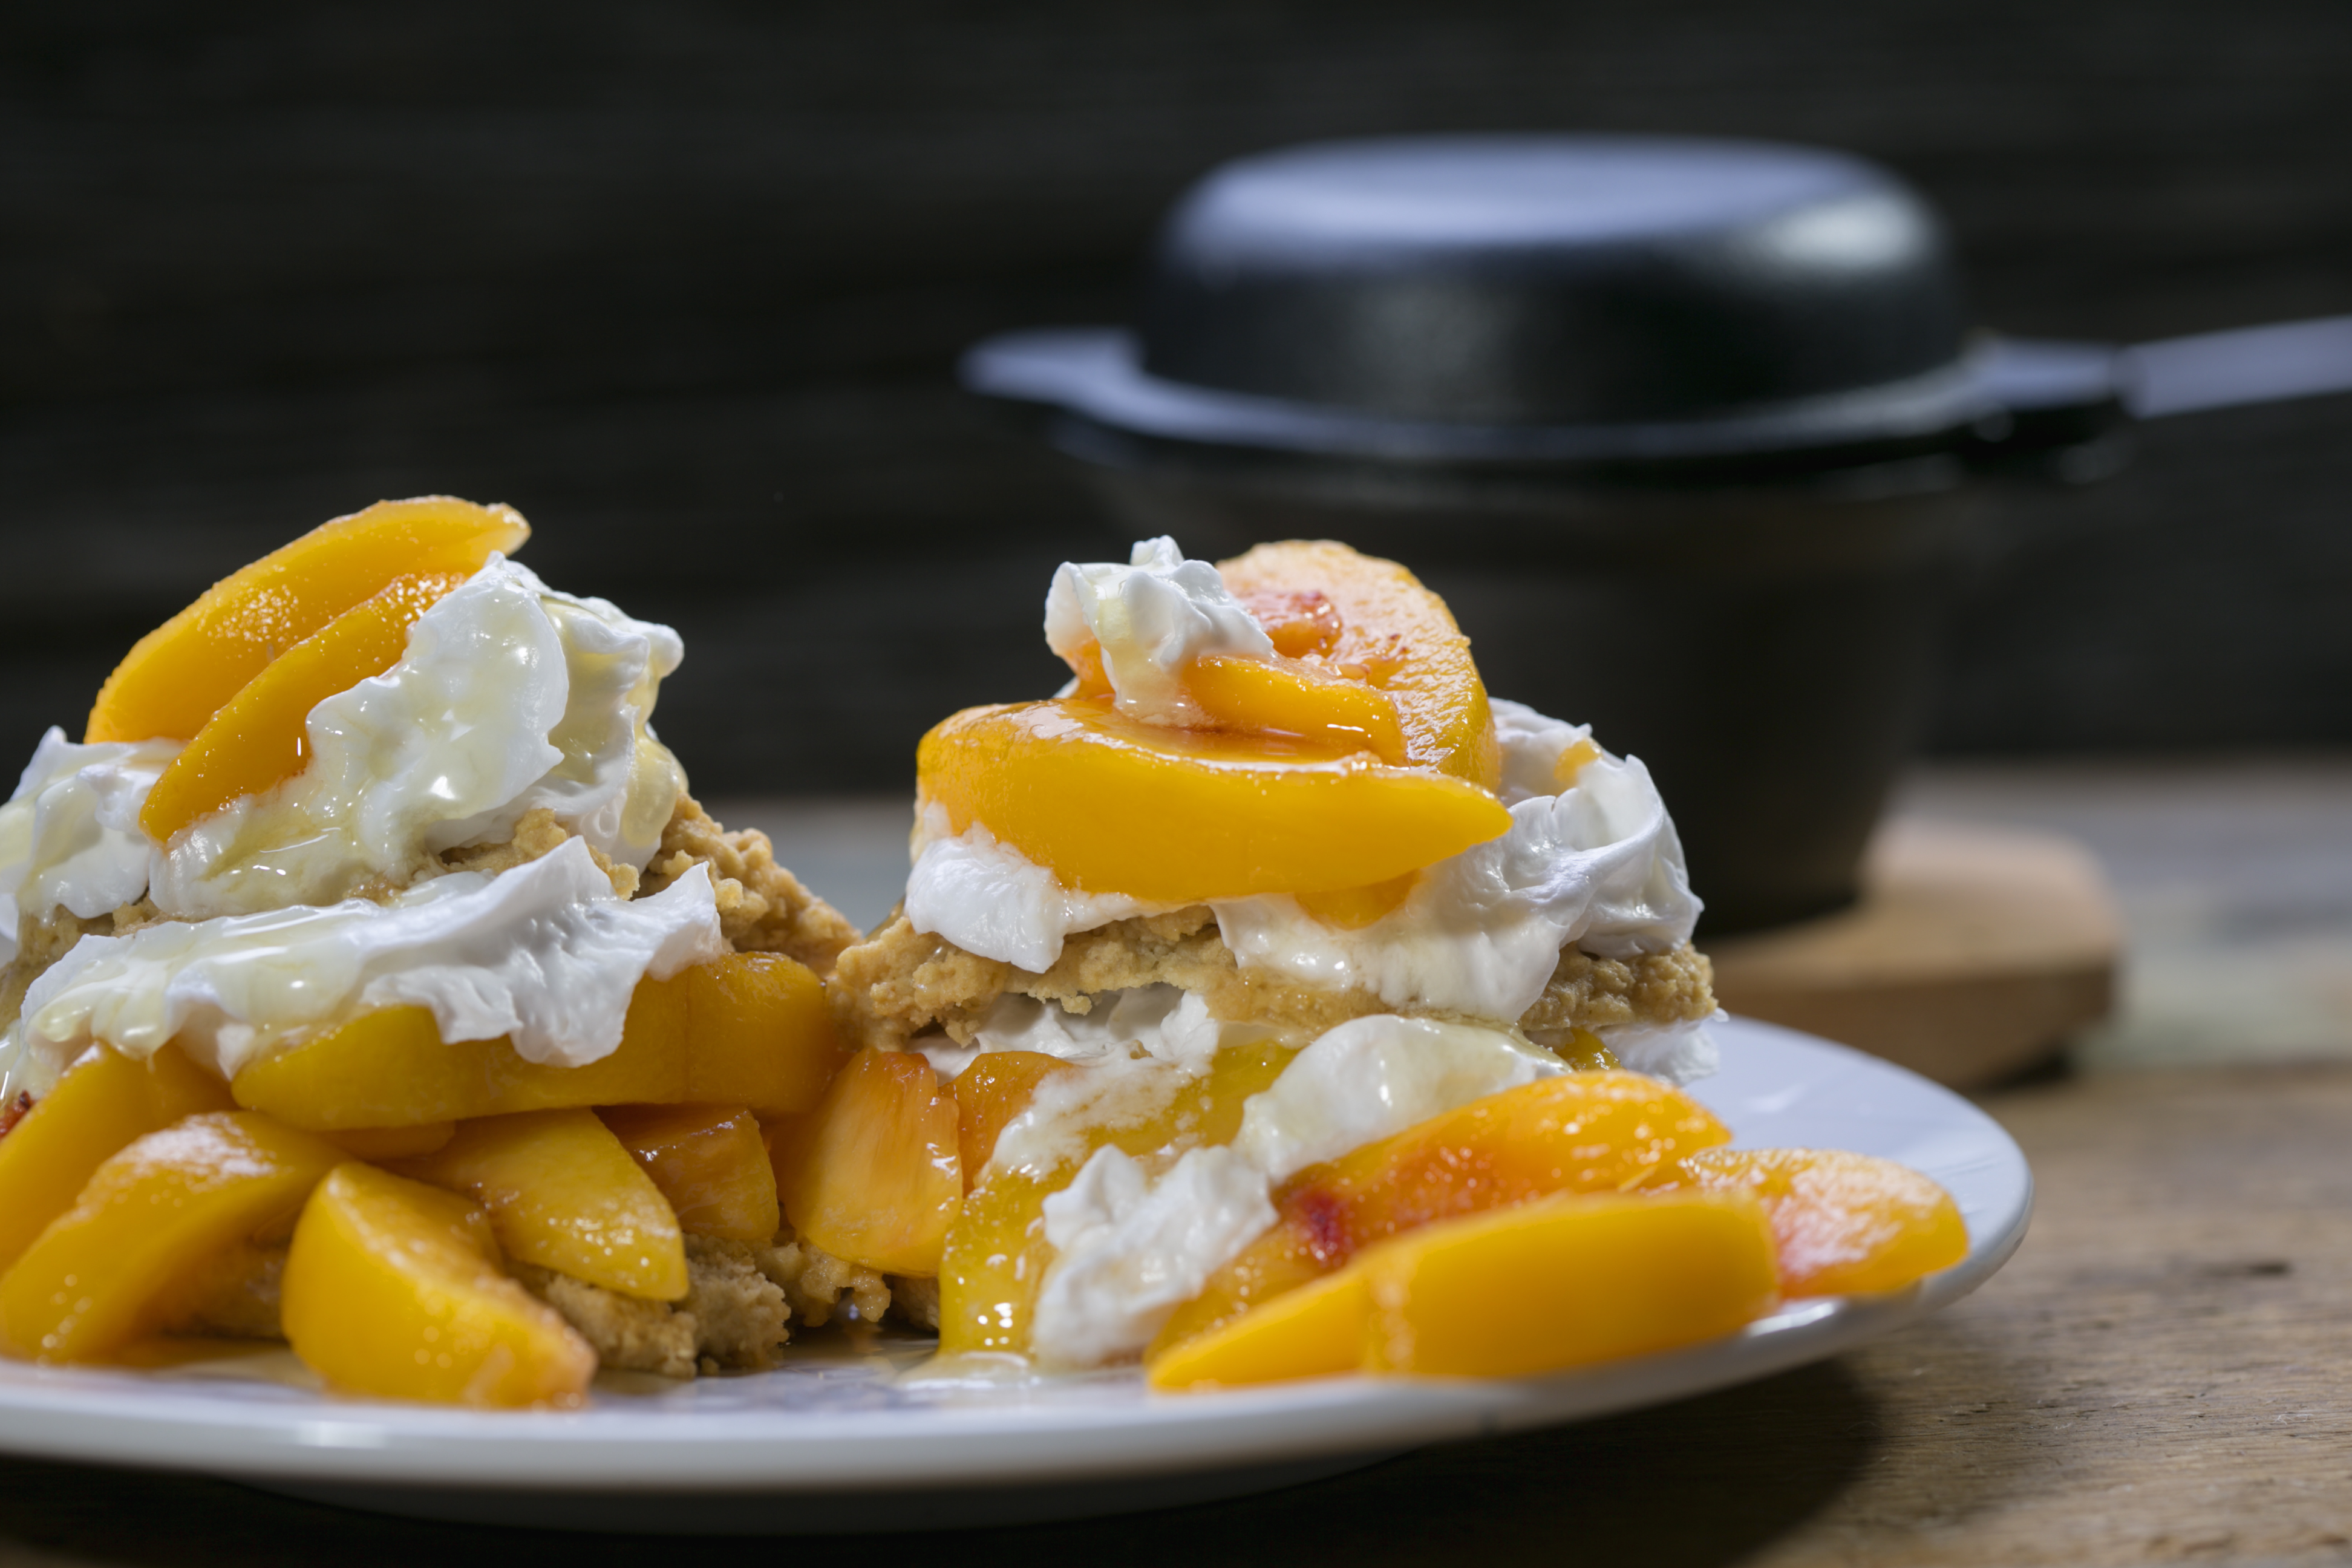 Decadent Gluten-Free Peach Shortcake With Coconut Whipped